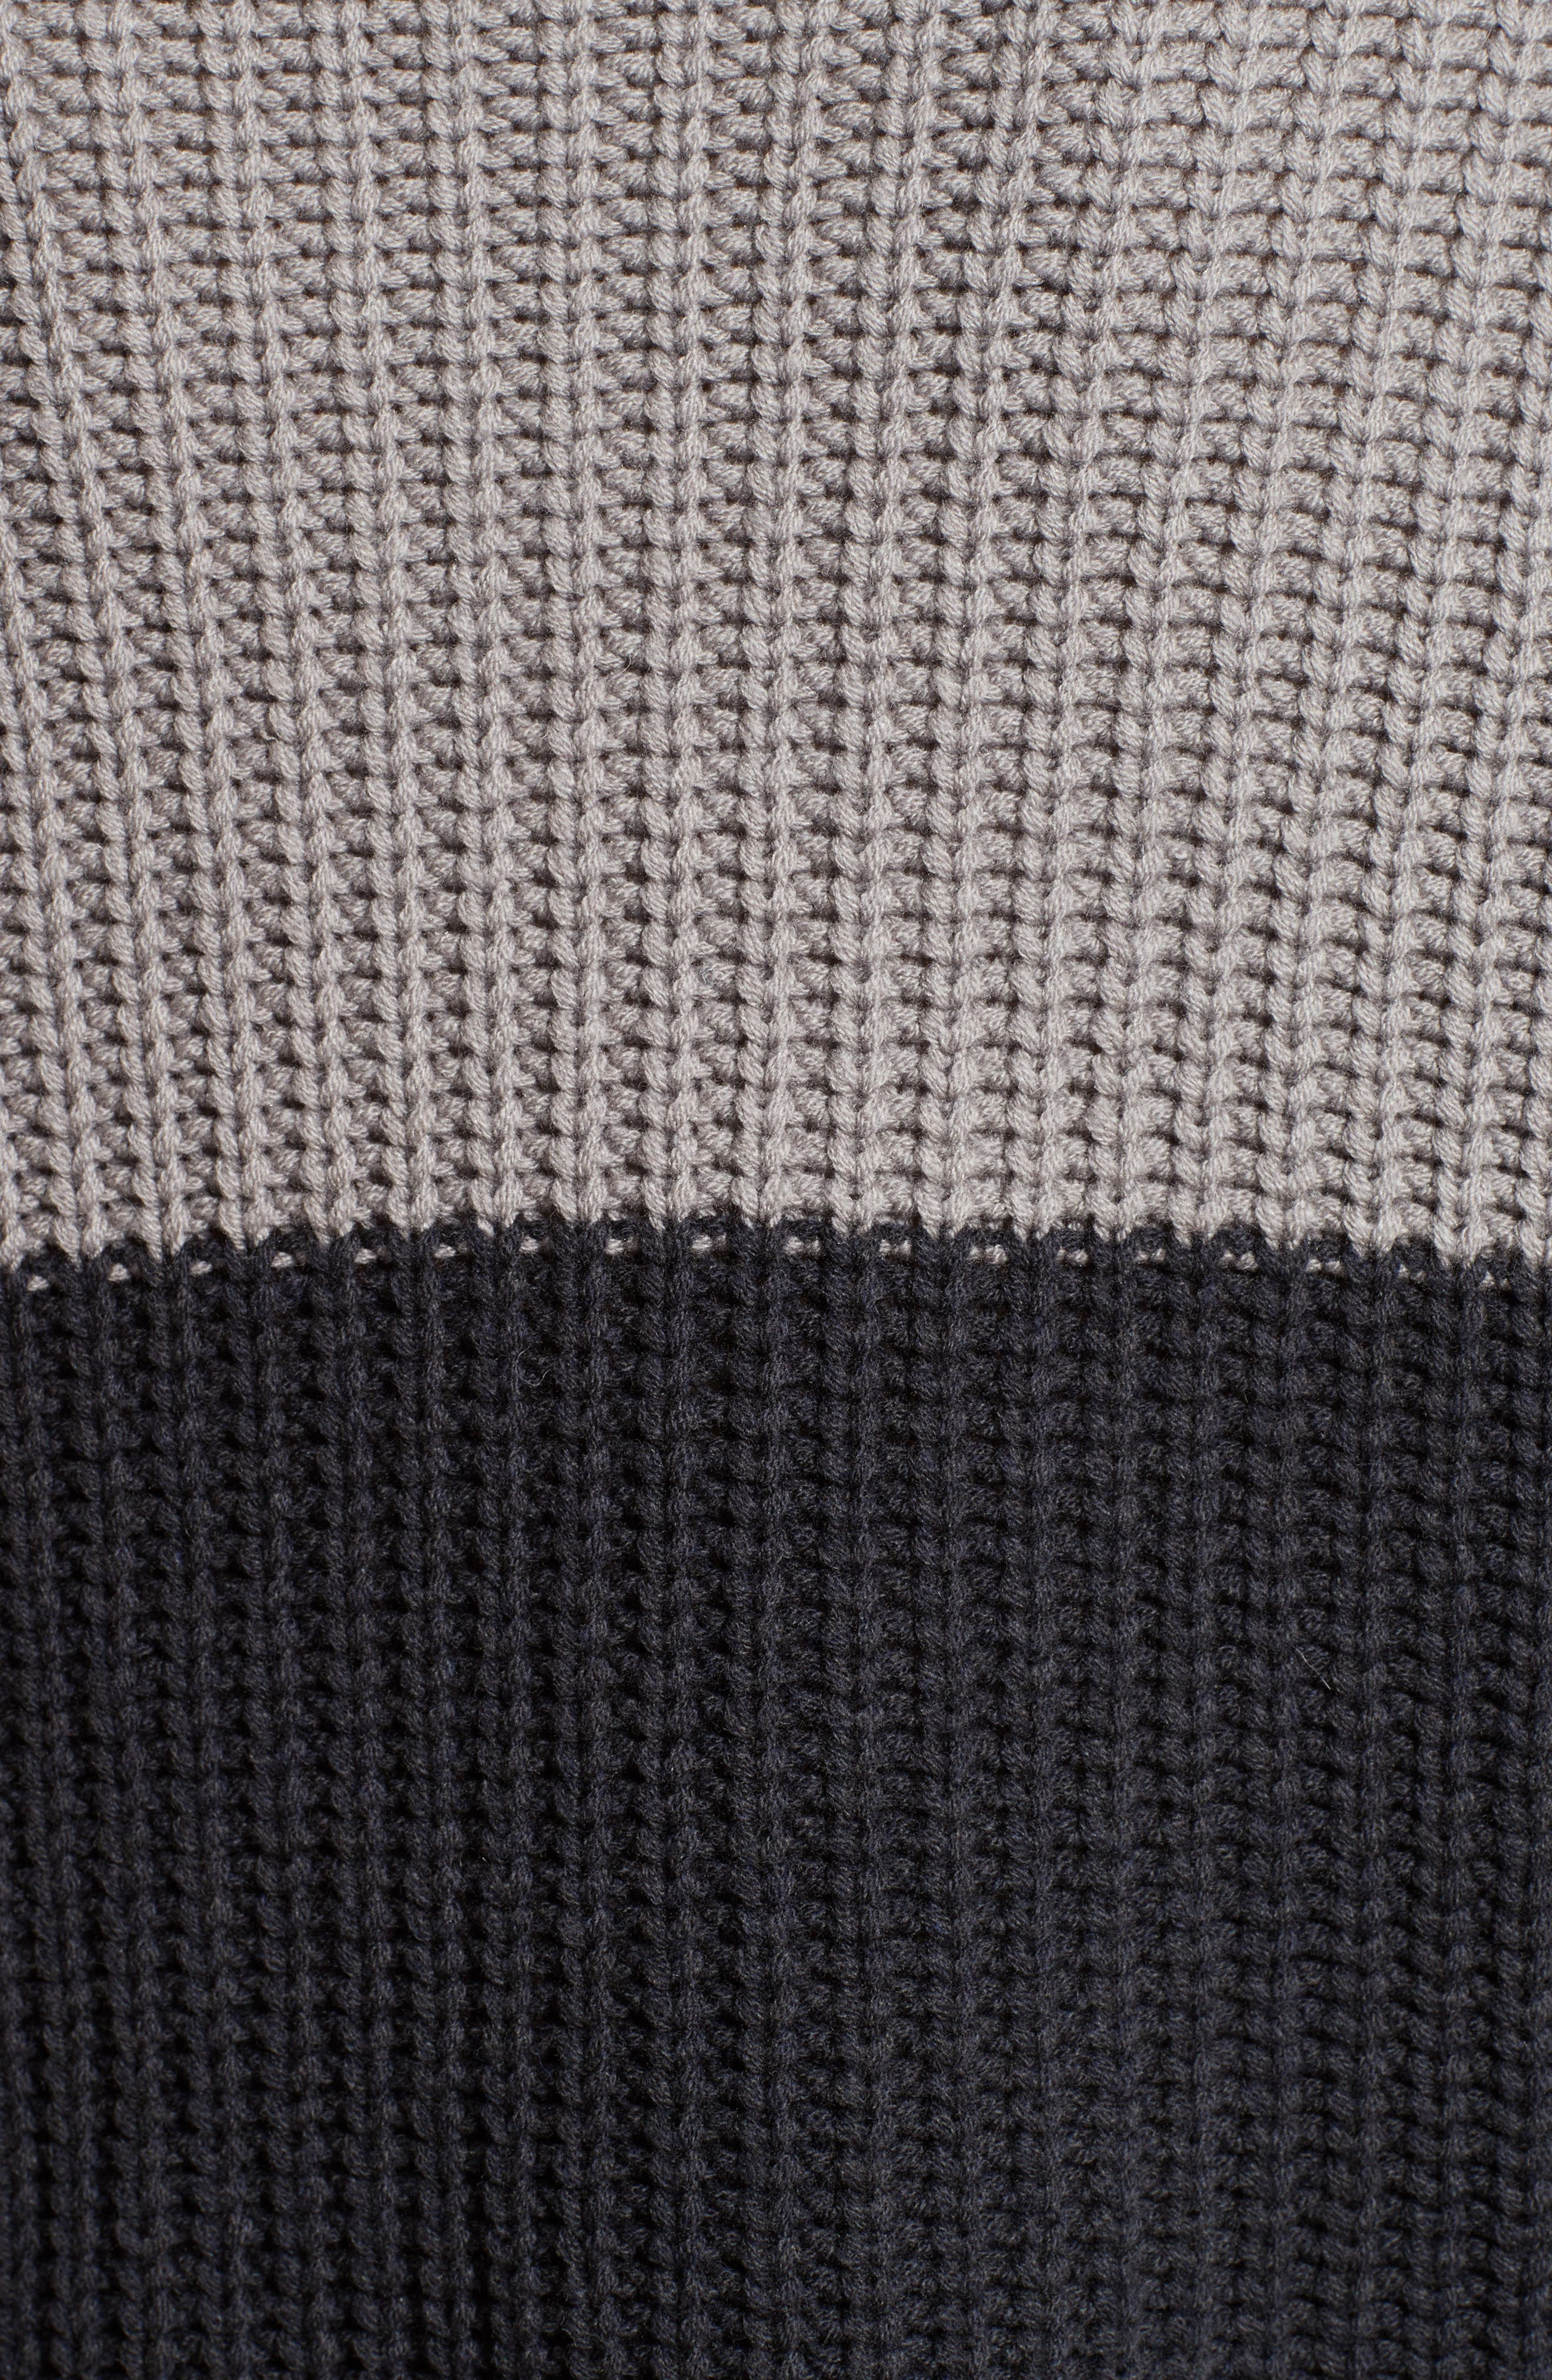 Ribbed Colorblock Sweater,                             Alternate thumbnail 5, color,                             021